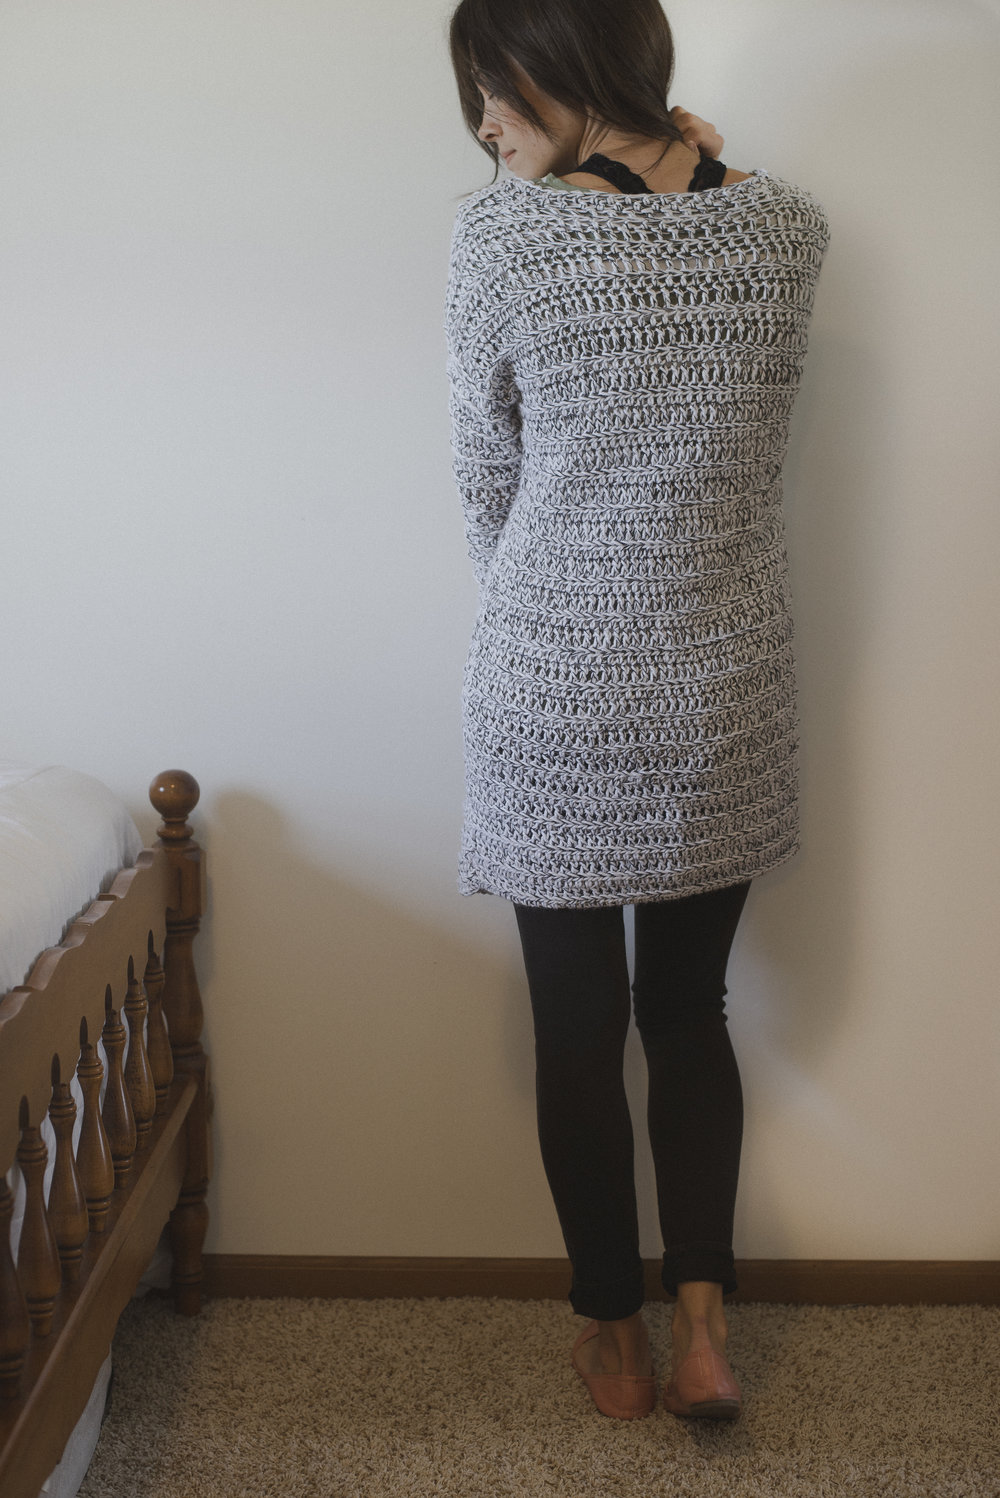 Free Crochet Pattern for the Marley Cardi - A Long & Chunky Cardigan ...